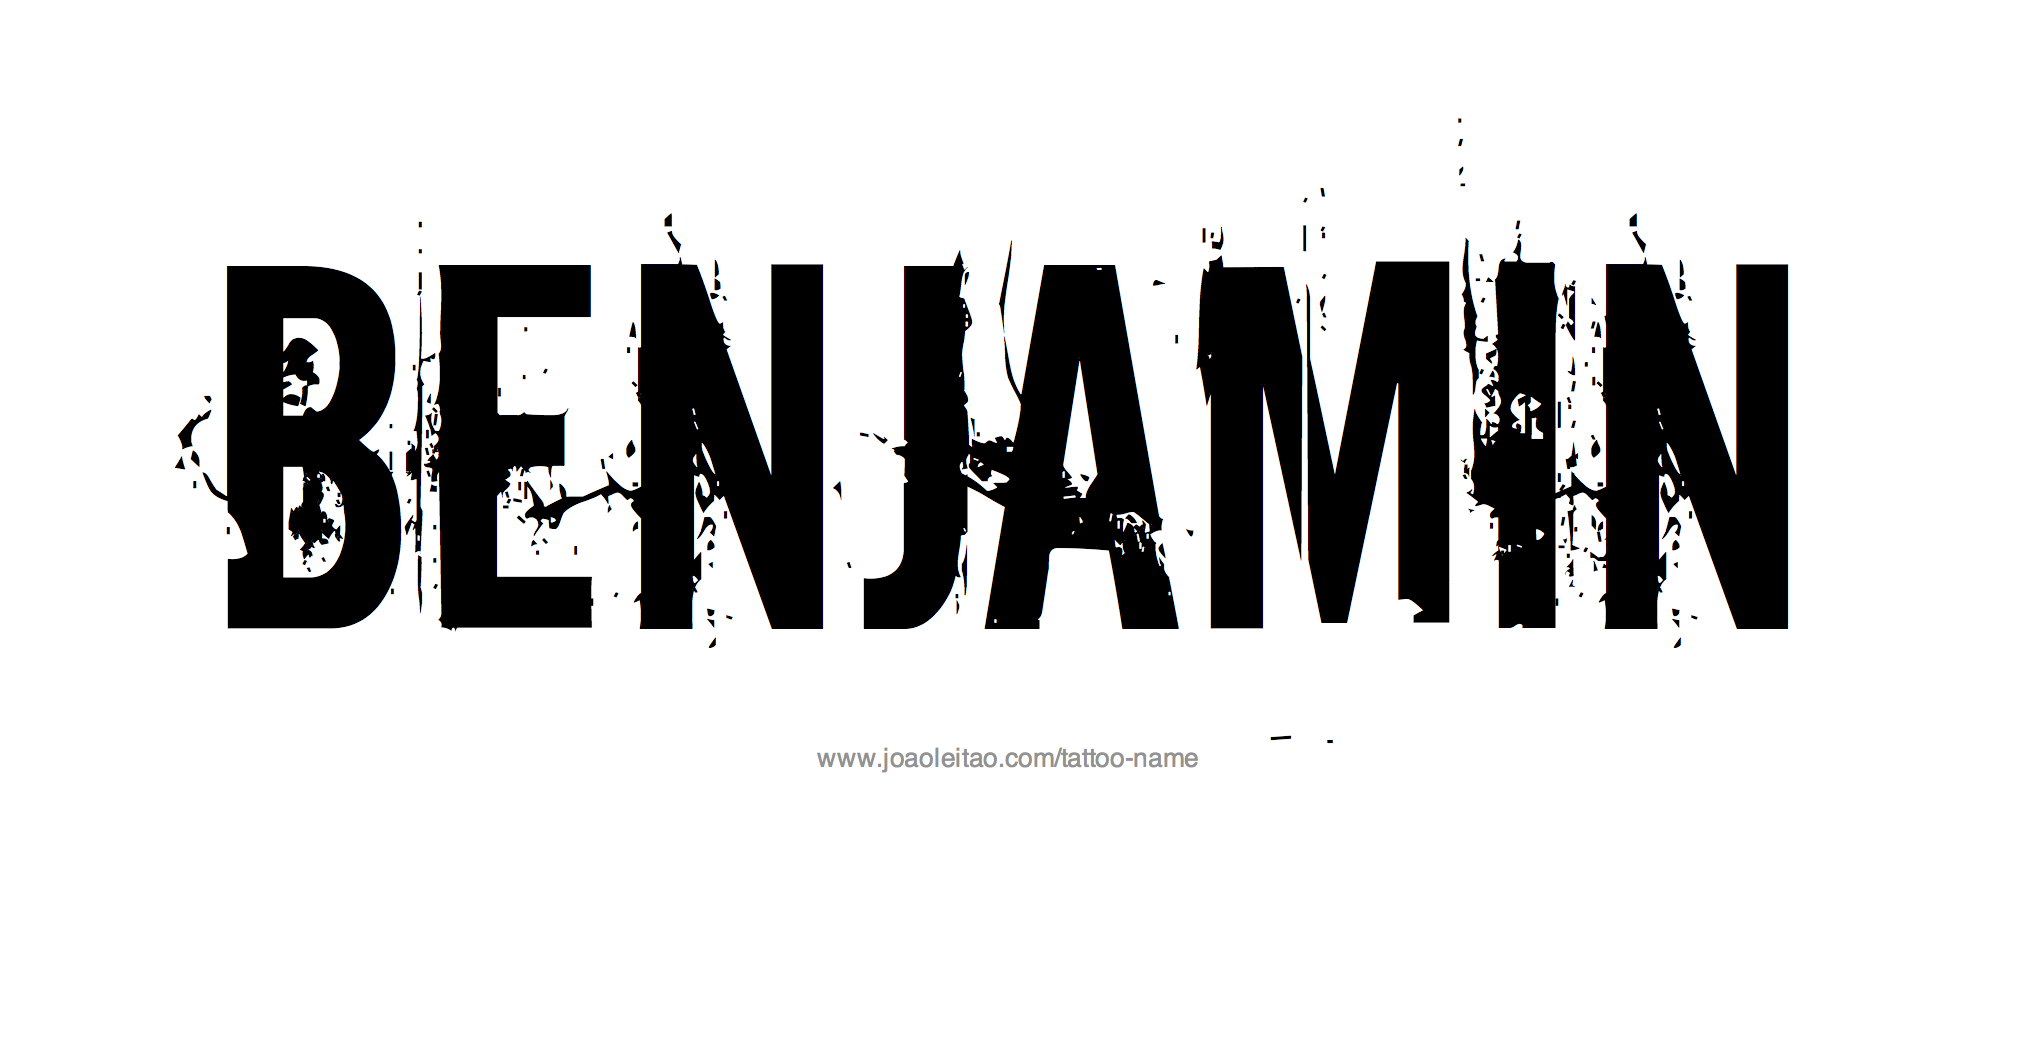 Tattoo Design Name Benjamin